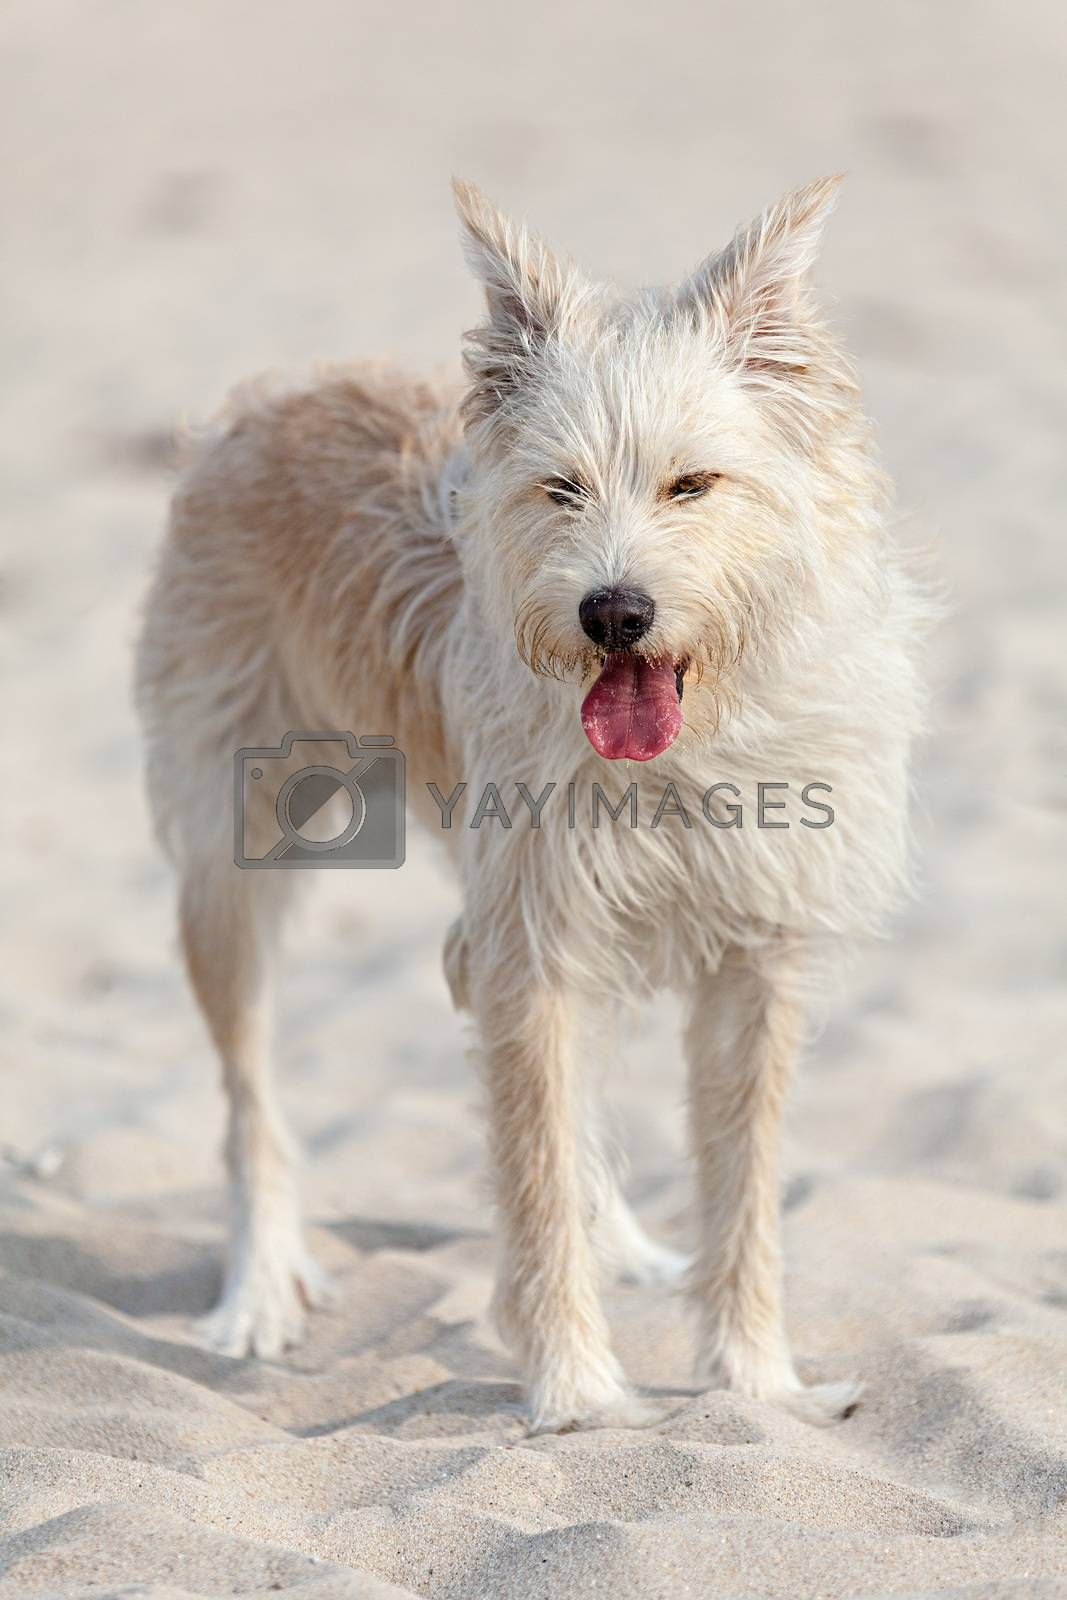 Royalty free image of White dog on the beach by ajn